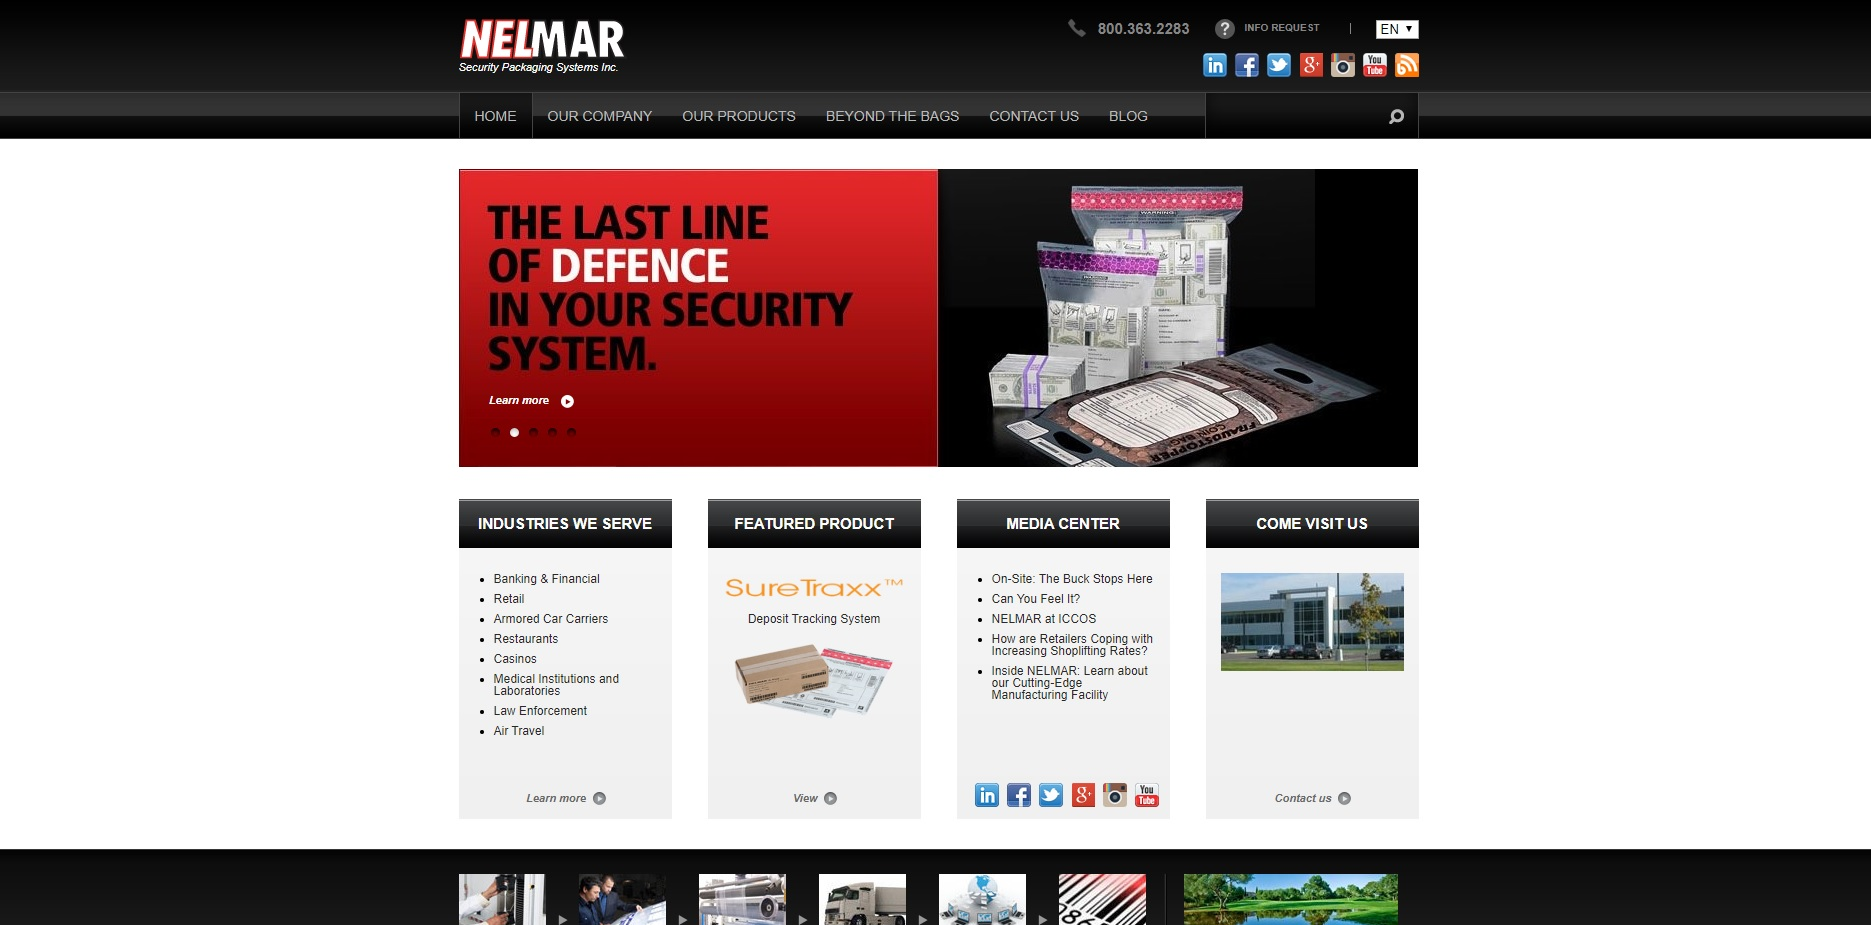 NELMAR Security Packaging Systems Inc.